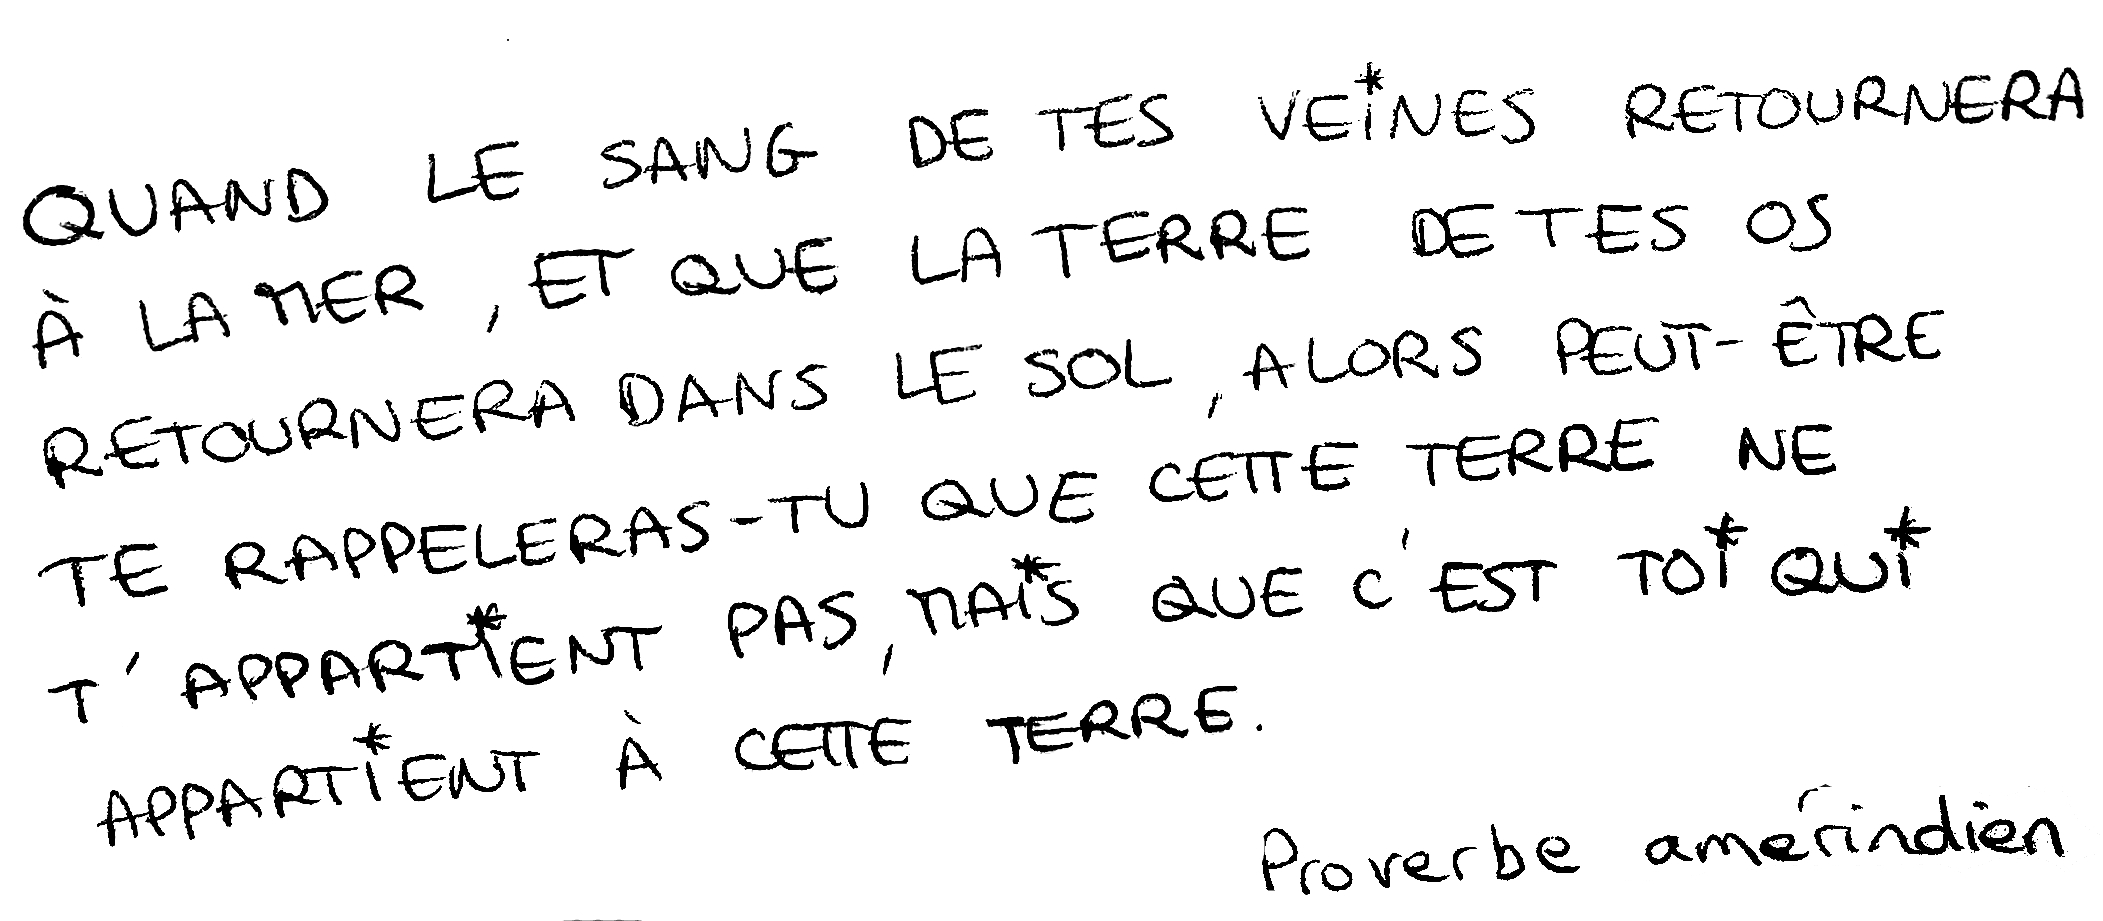 proverbe améridien nature